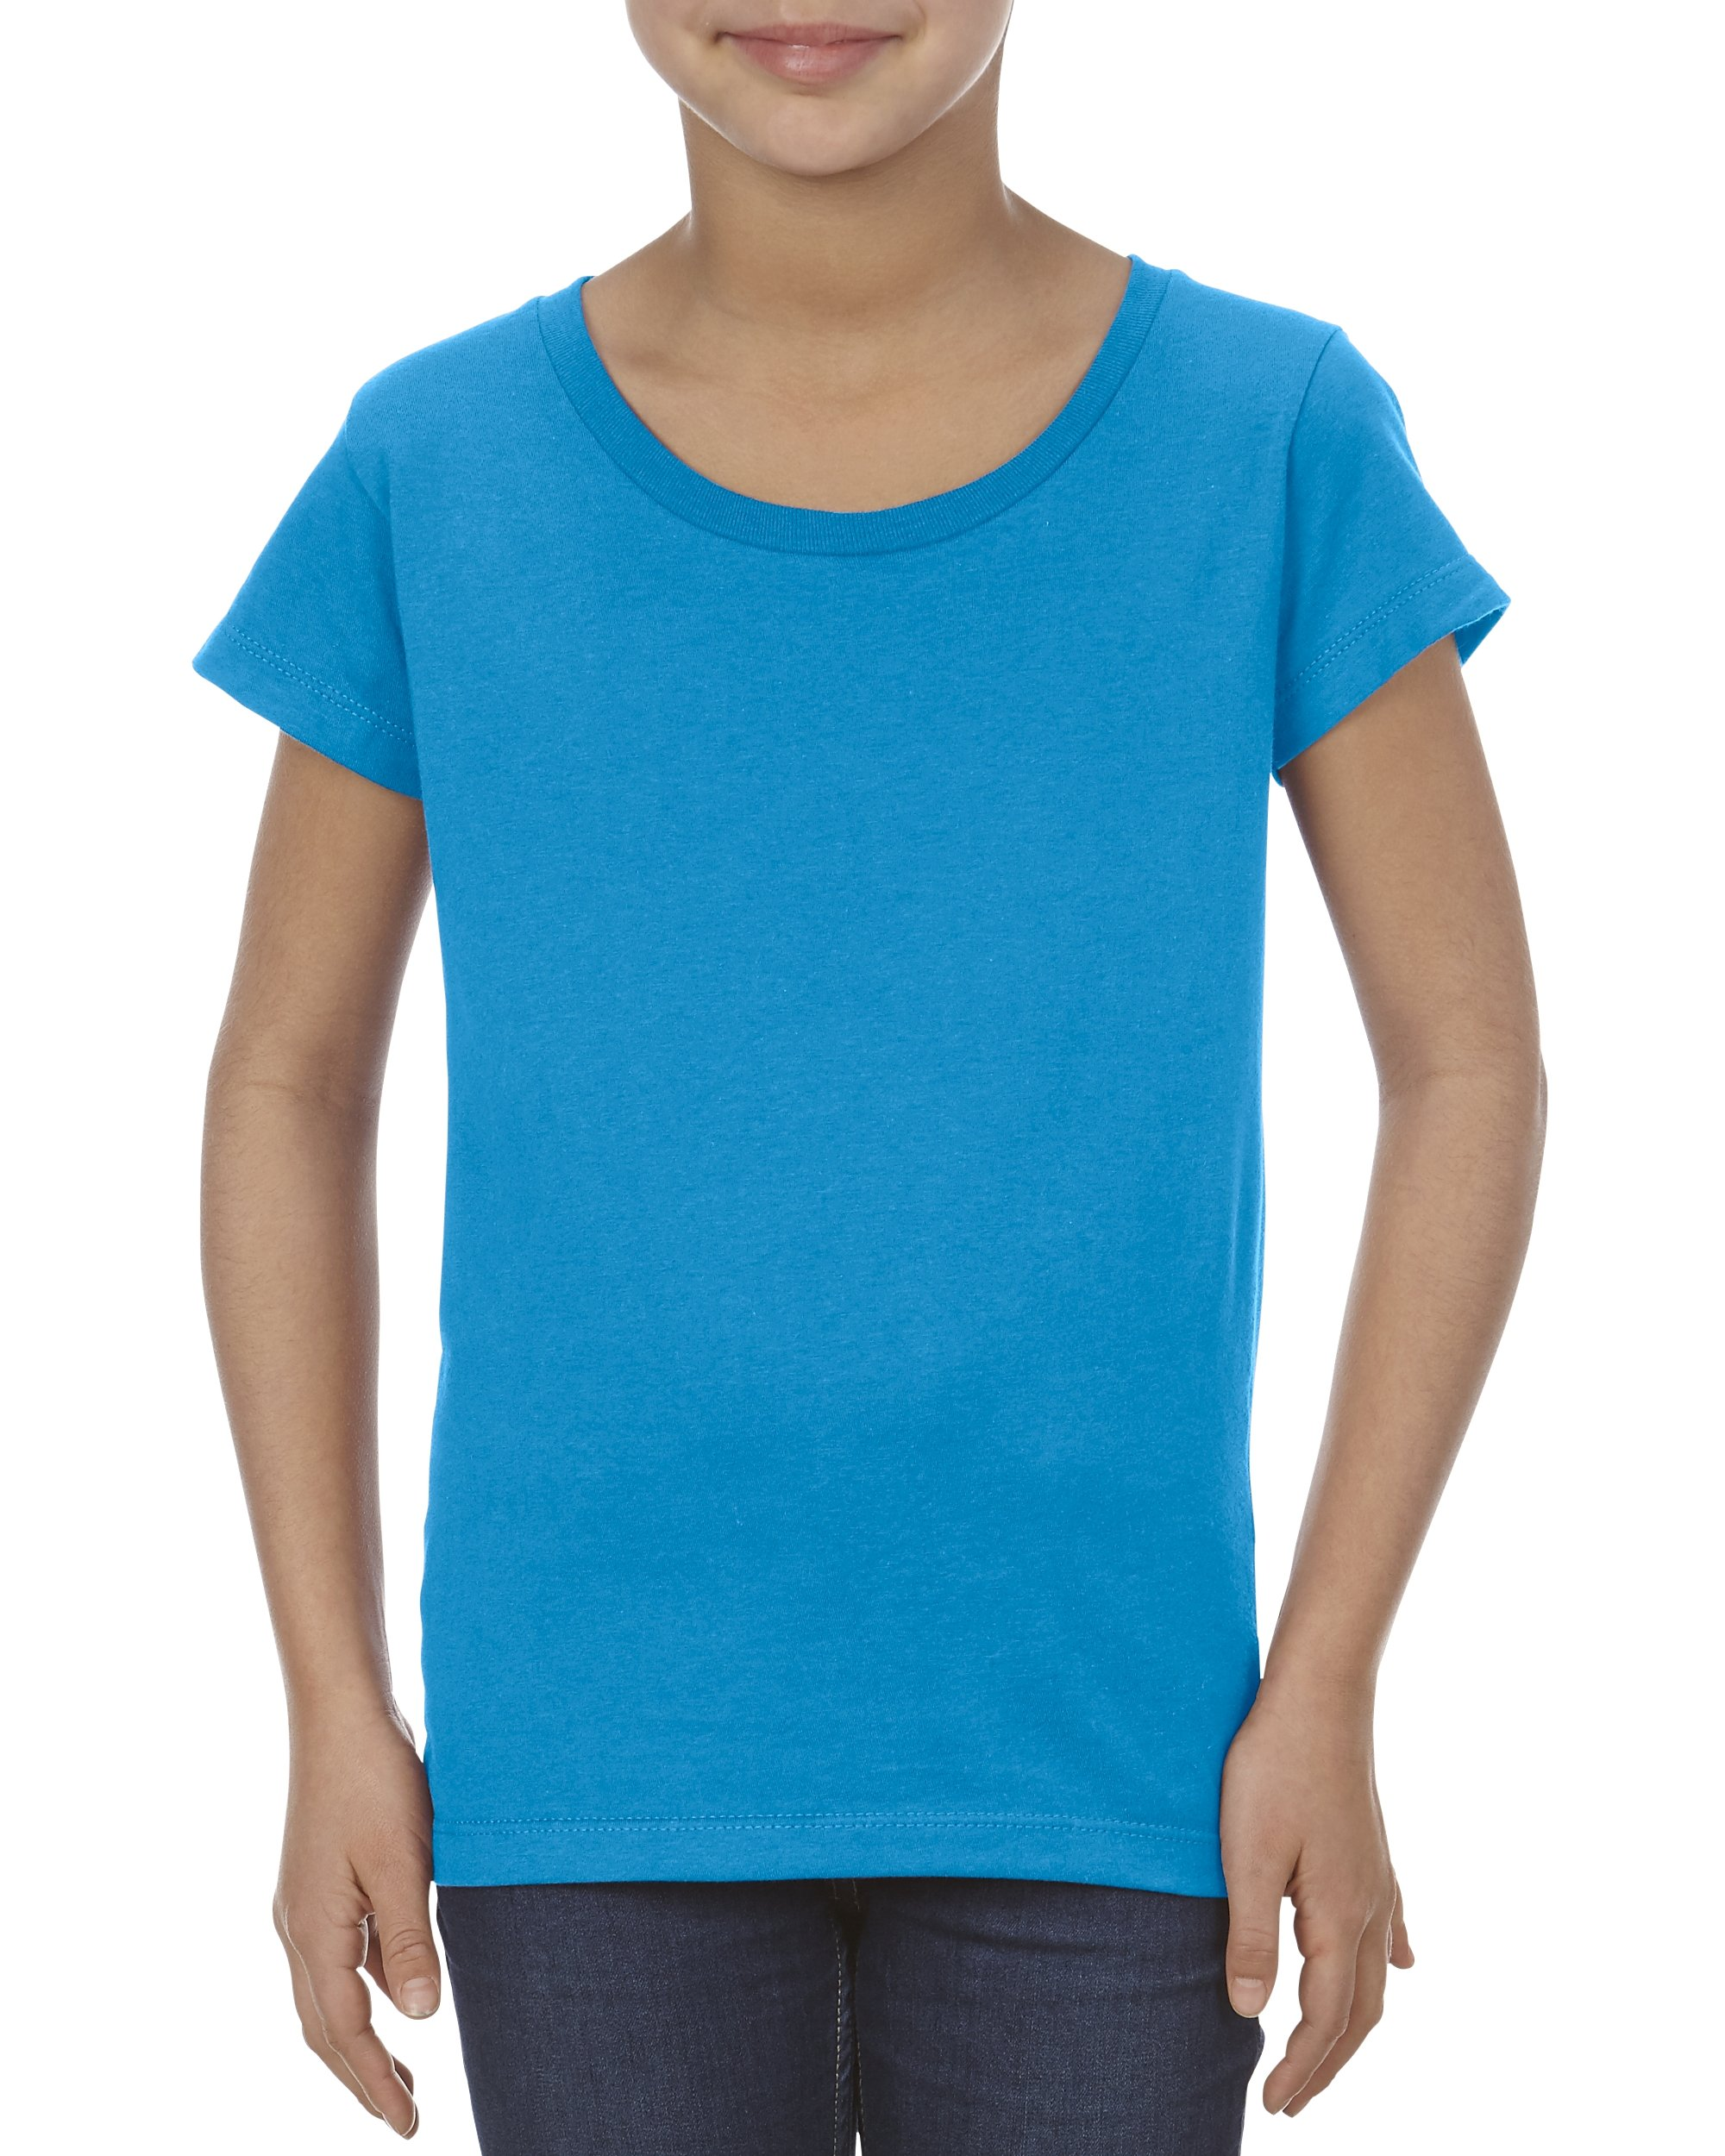 Alstyle Apparel AAA Big Girls' Youth Ultimate Ringpsun T-Shirt, Turquoise, Large by Alstyle Apparel